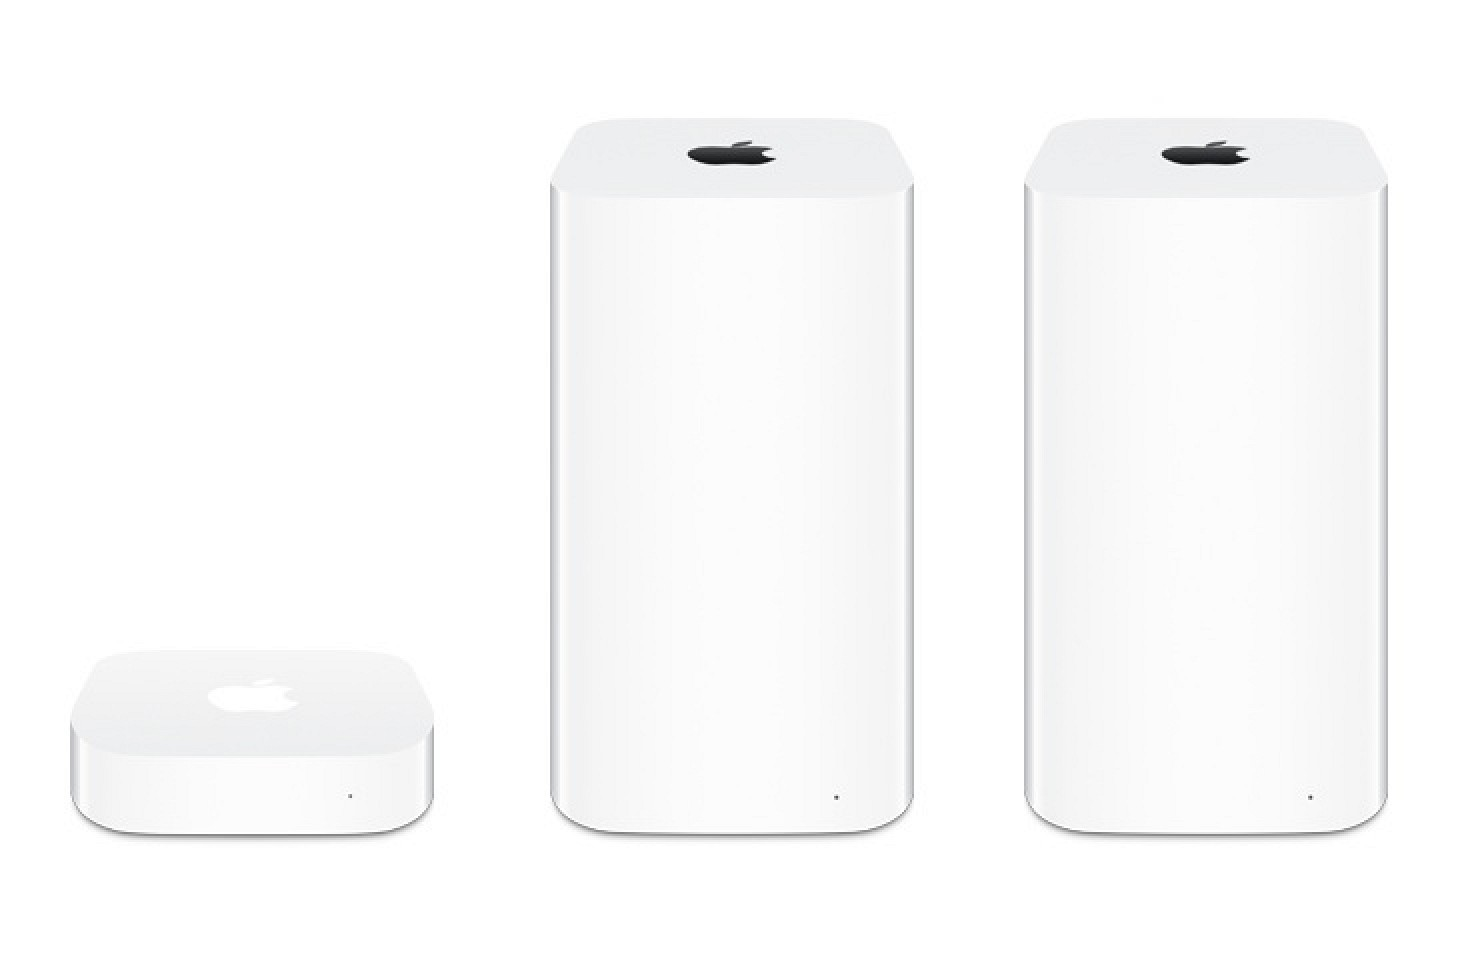 Apple Releases AirPort Base Station Firmware Update 7 8 1